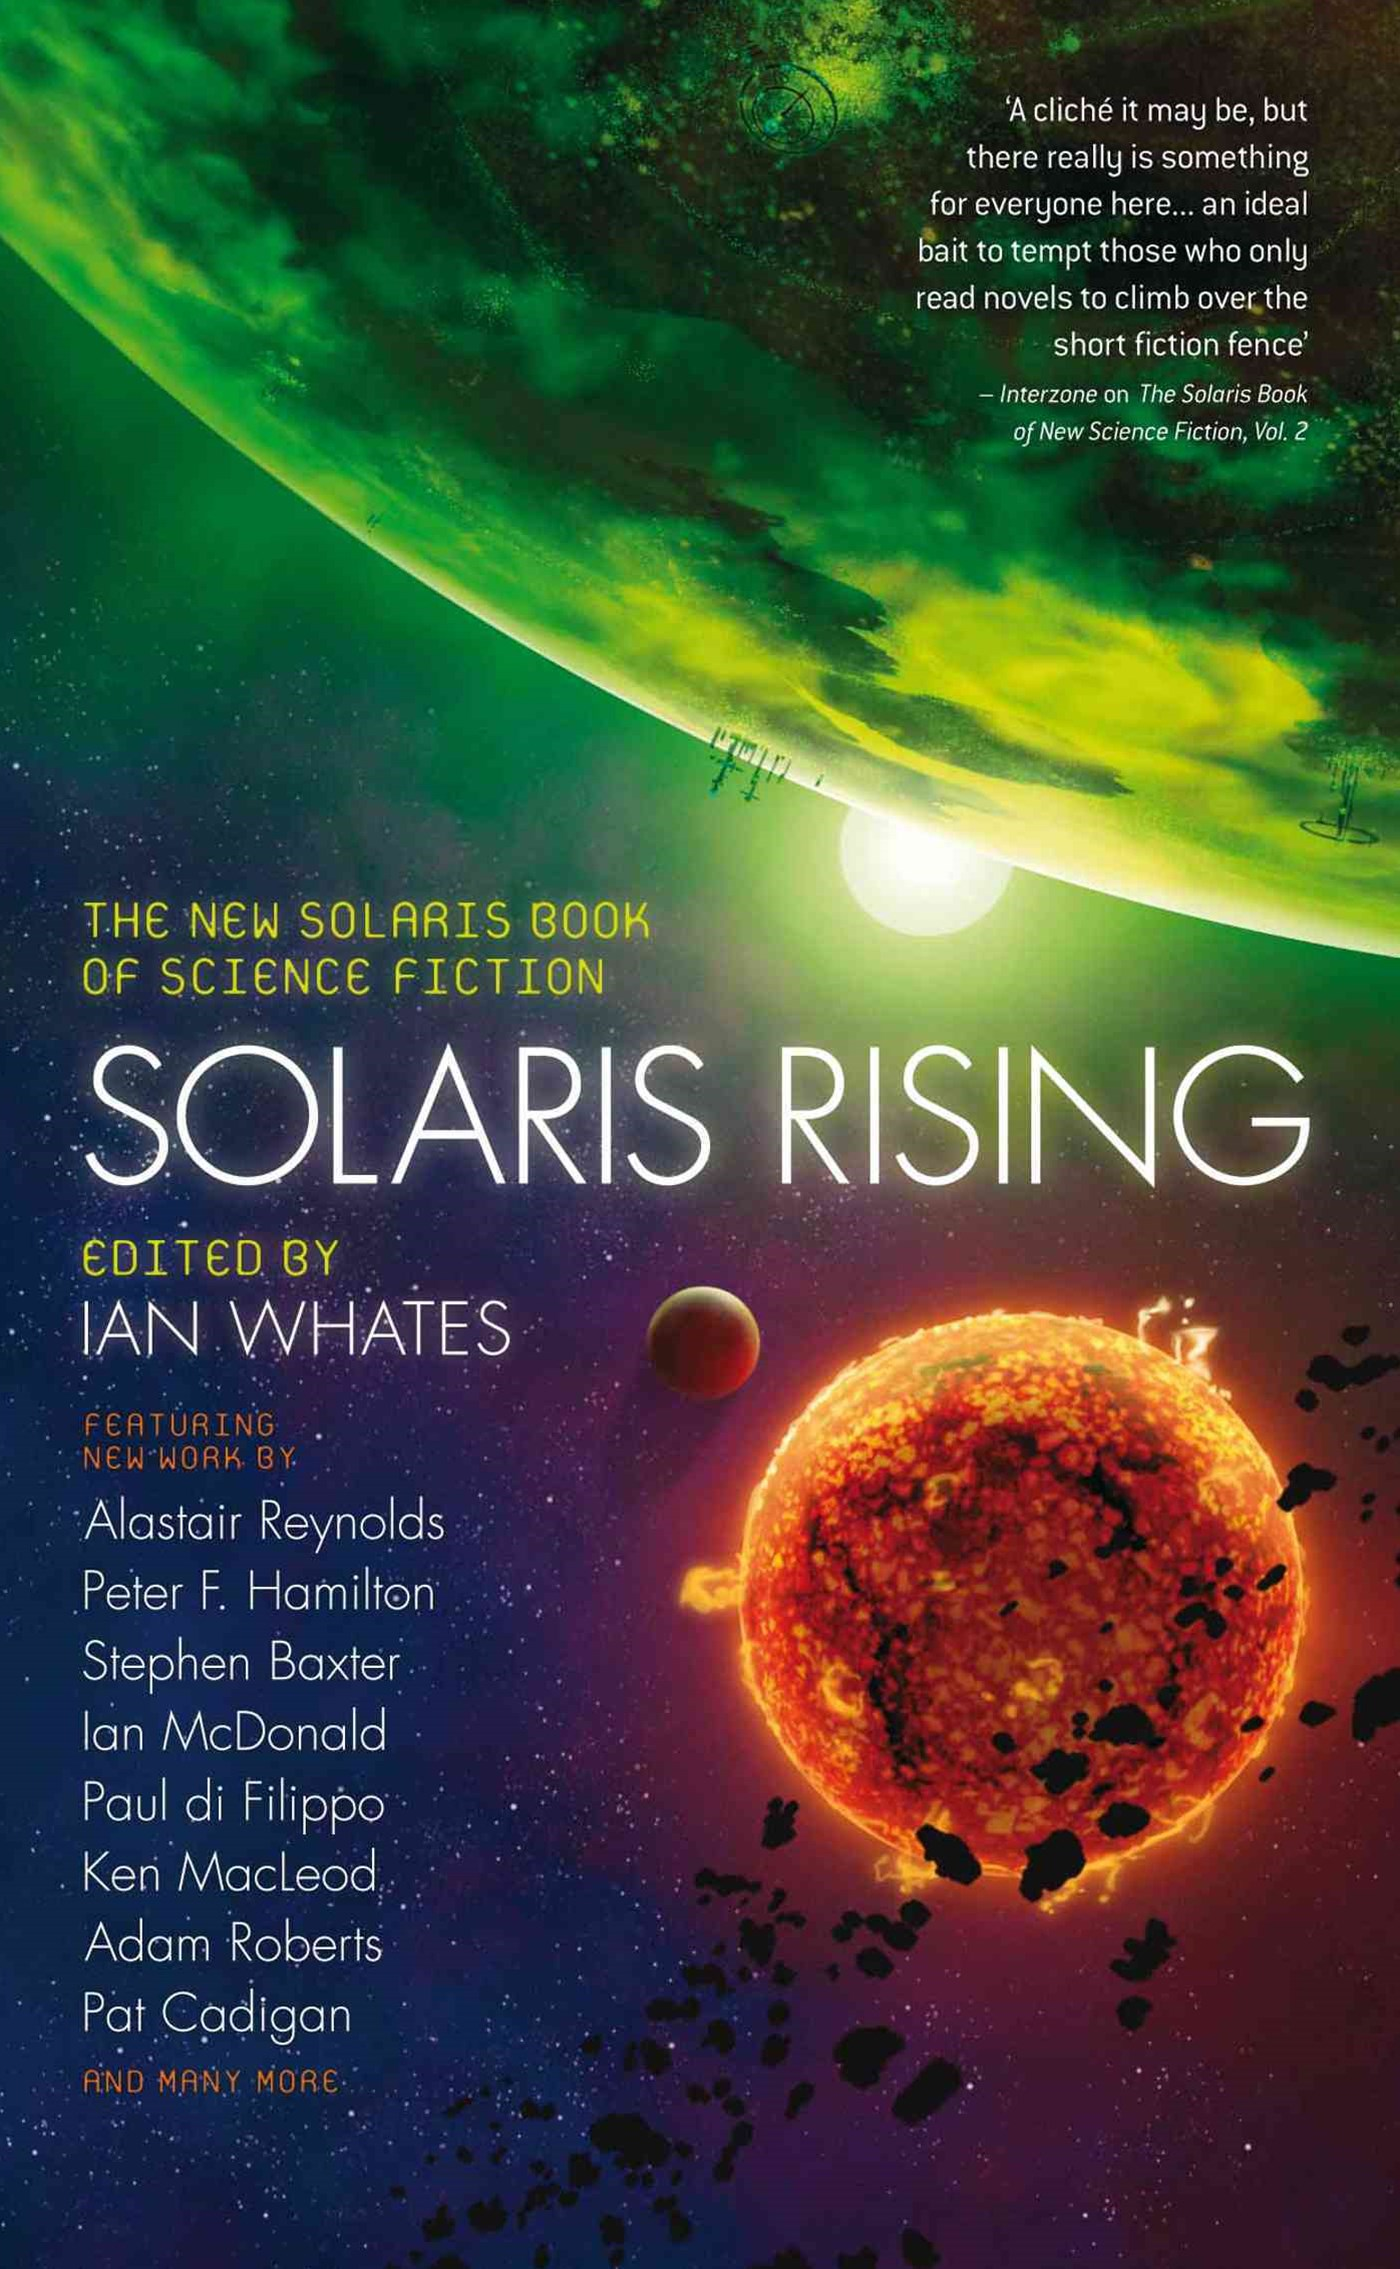 The Solaris Book of New Science Fiction 2007